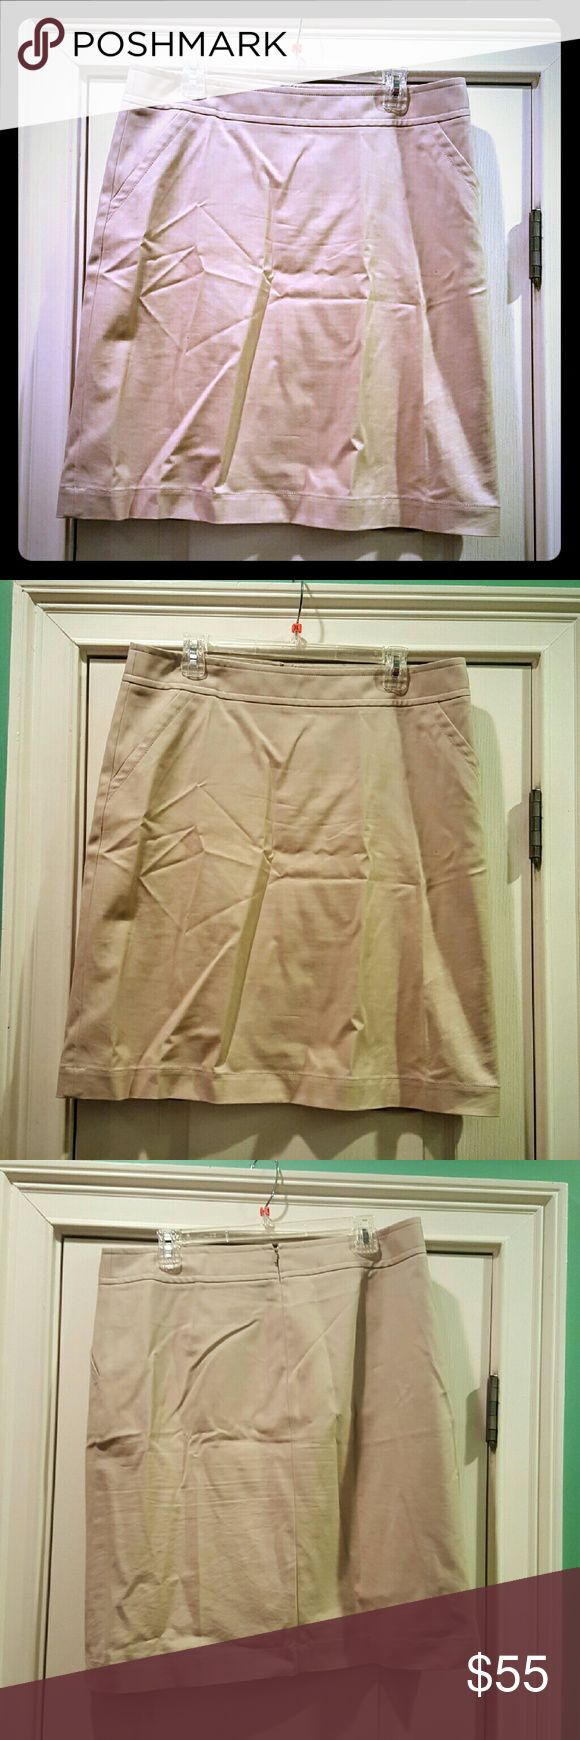 Banana Republic Stretch Khaki Pencil Skirt 14 Tall Excellent used condition Khaki Stretch Pencil Skirt by Banana Republic! Size 14 Tall.  2 front pockets and back zip.  64% cotton,  32% rayon,  4% spandex.  About 23 inches long & 18 inches across the waist. Perfect and comfortable for work or to wear on the weekend. Just been sitting in my drawer so want it to get some use! Reasonable offers and questions welcome! Banana Republic Skirts Pencil